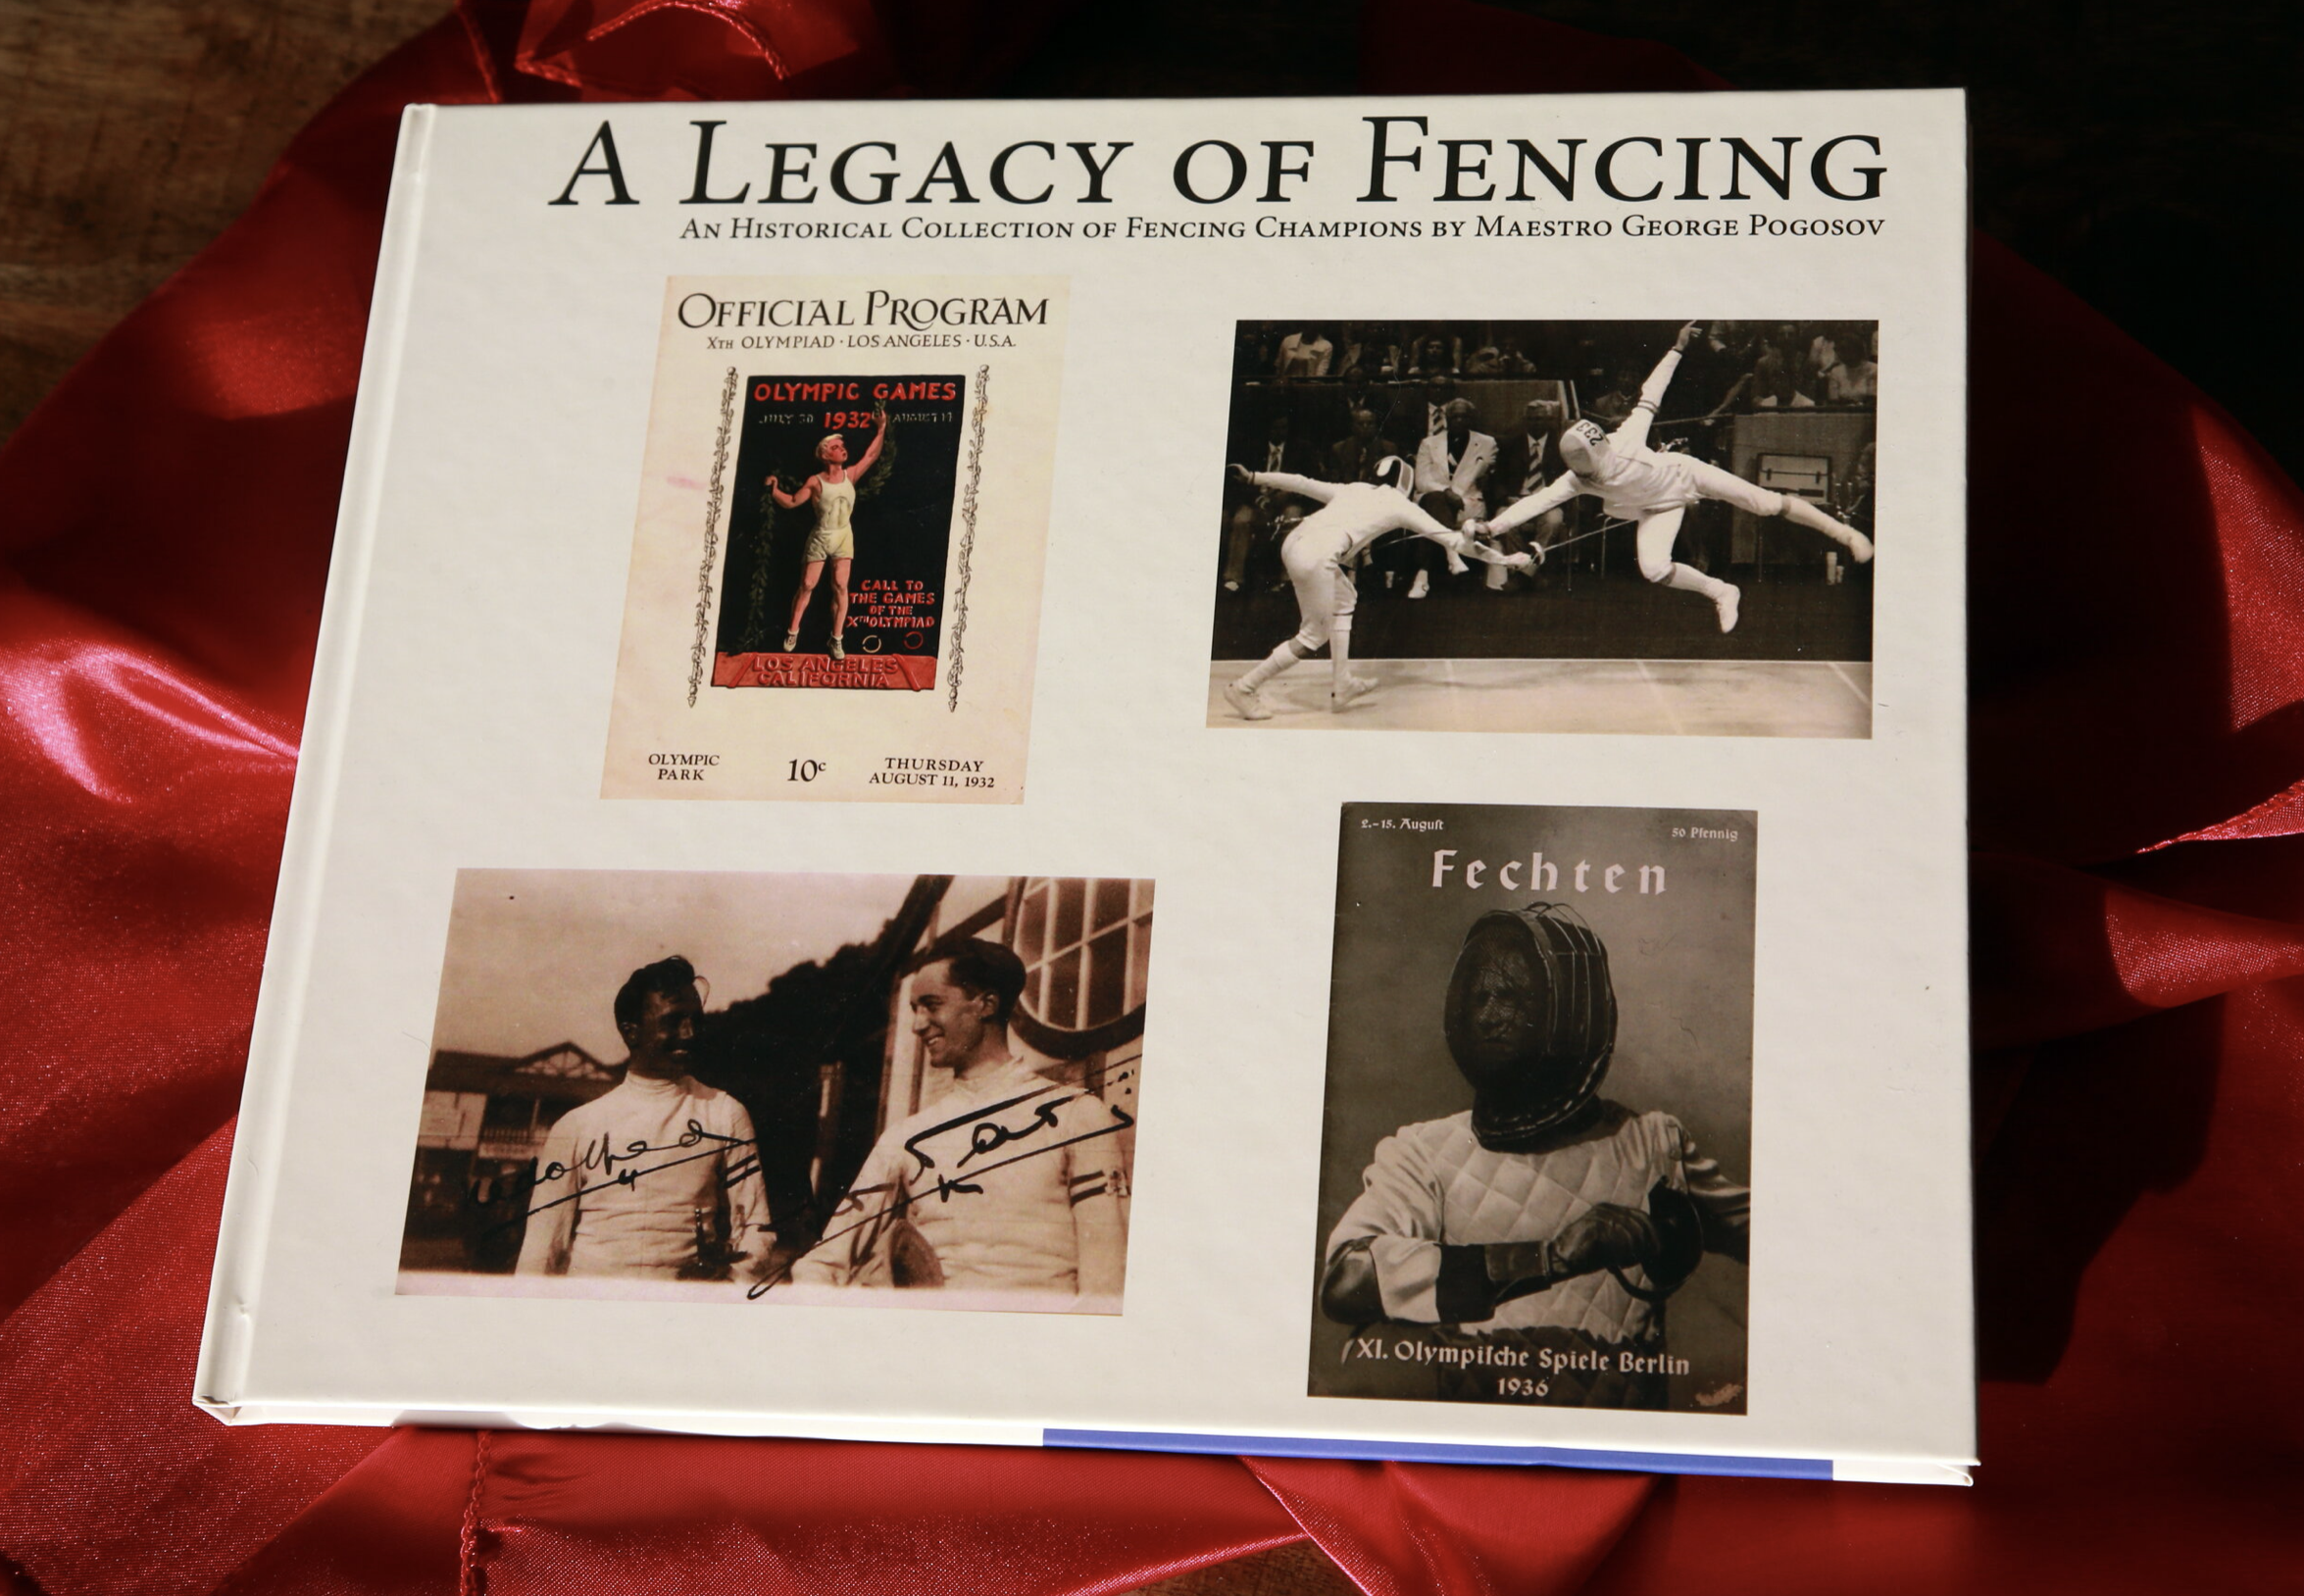 The Book: A Legacy of Fencing